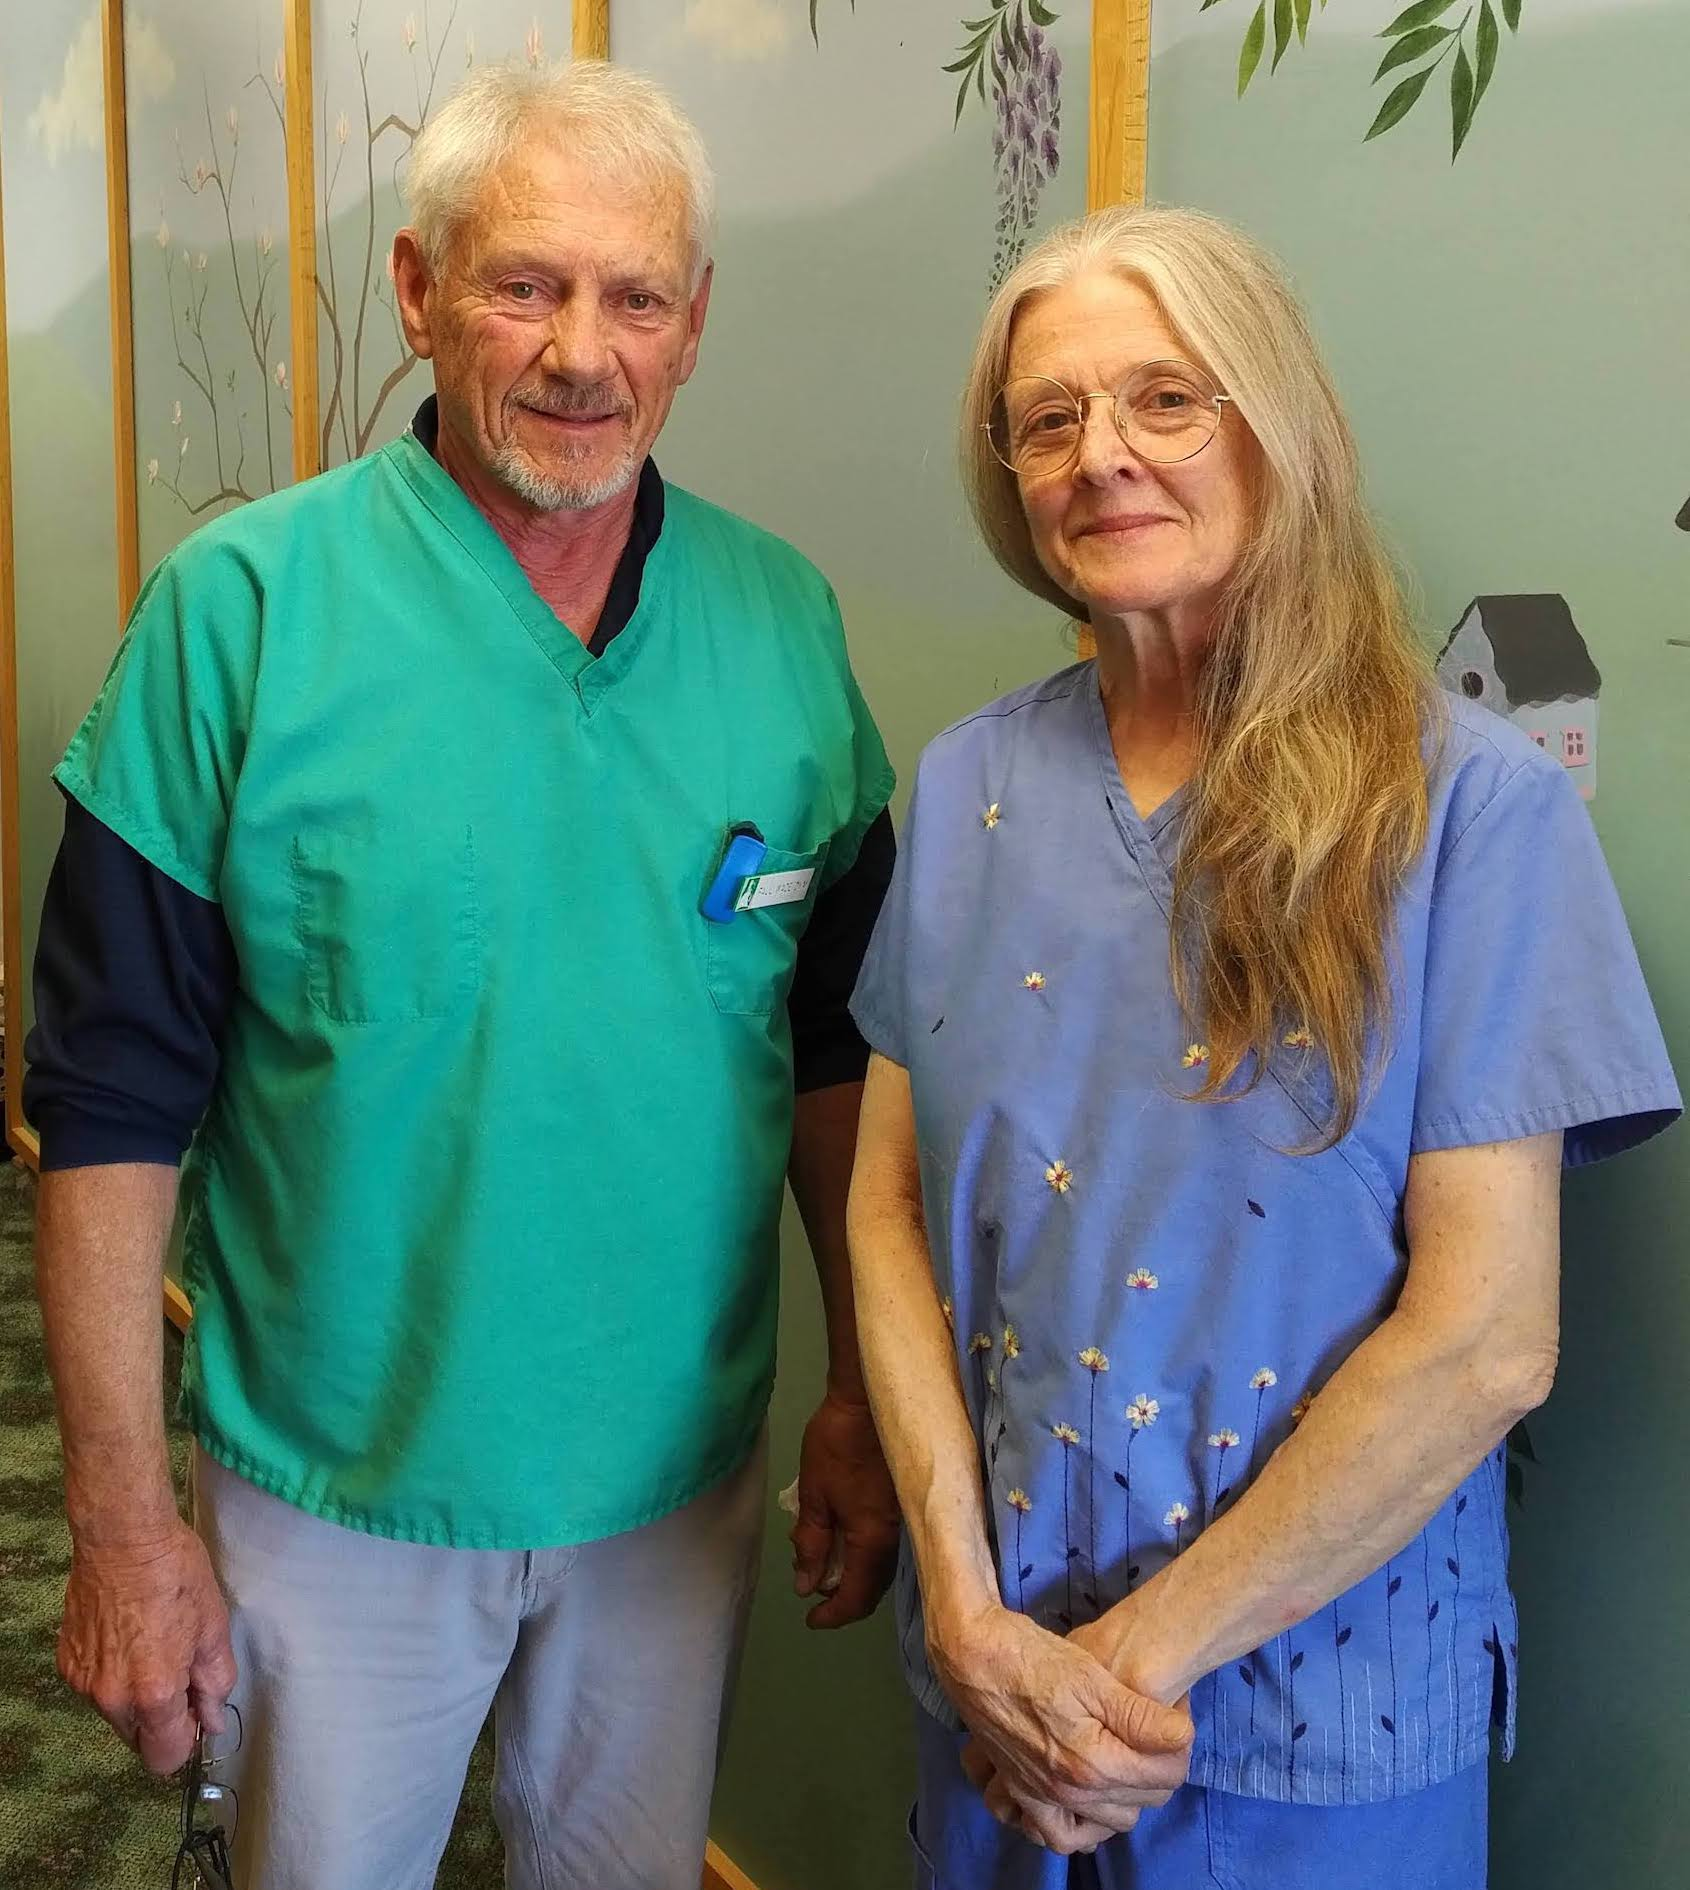 Paul Wade, DVM, and Robin Elms, DVM